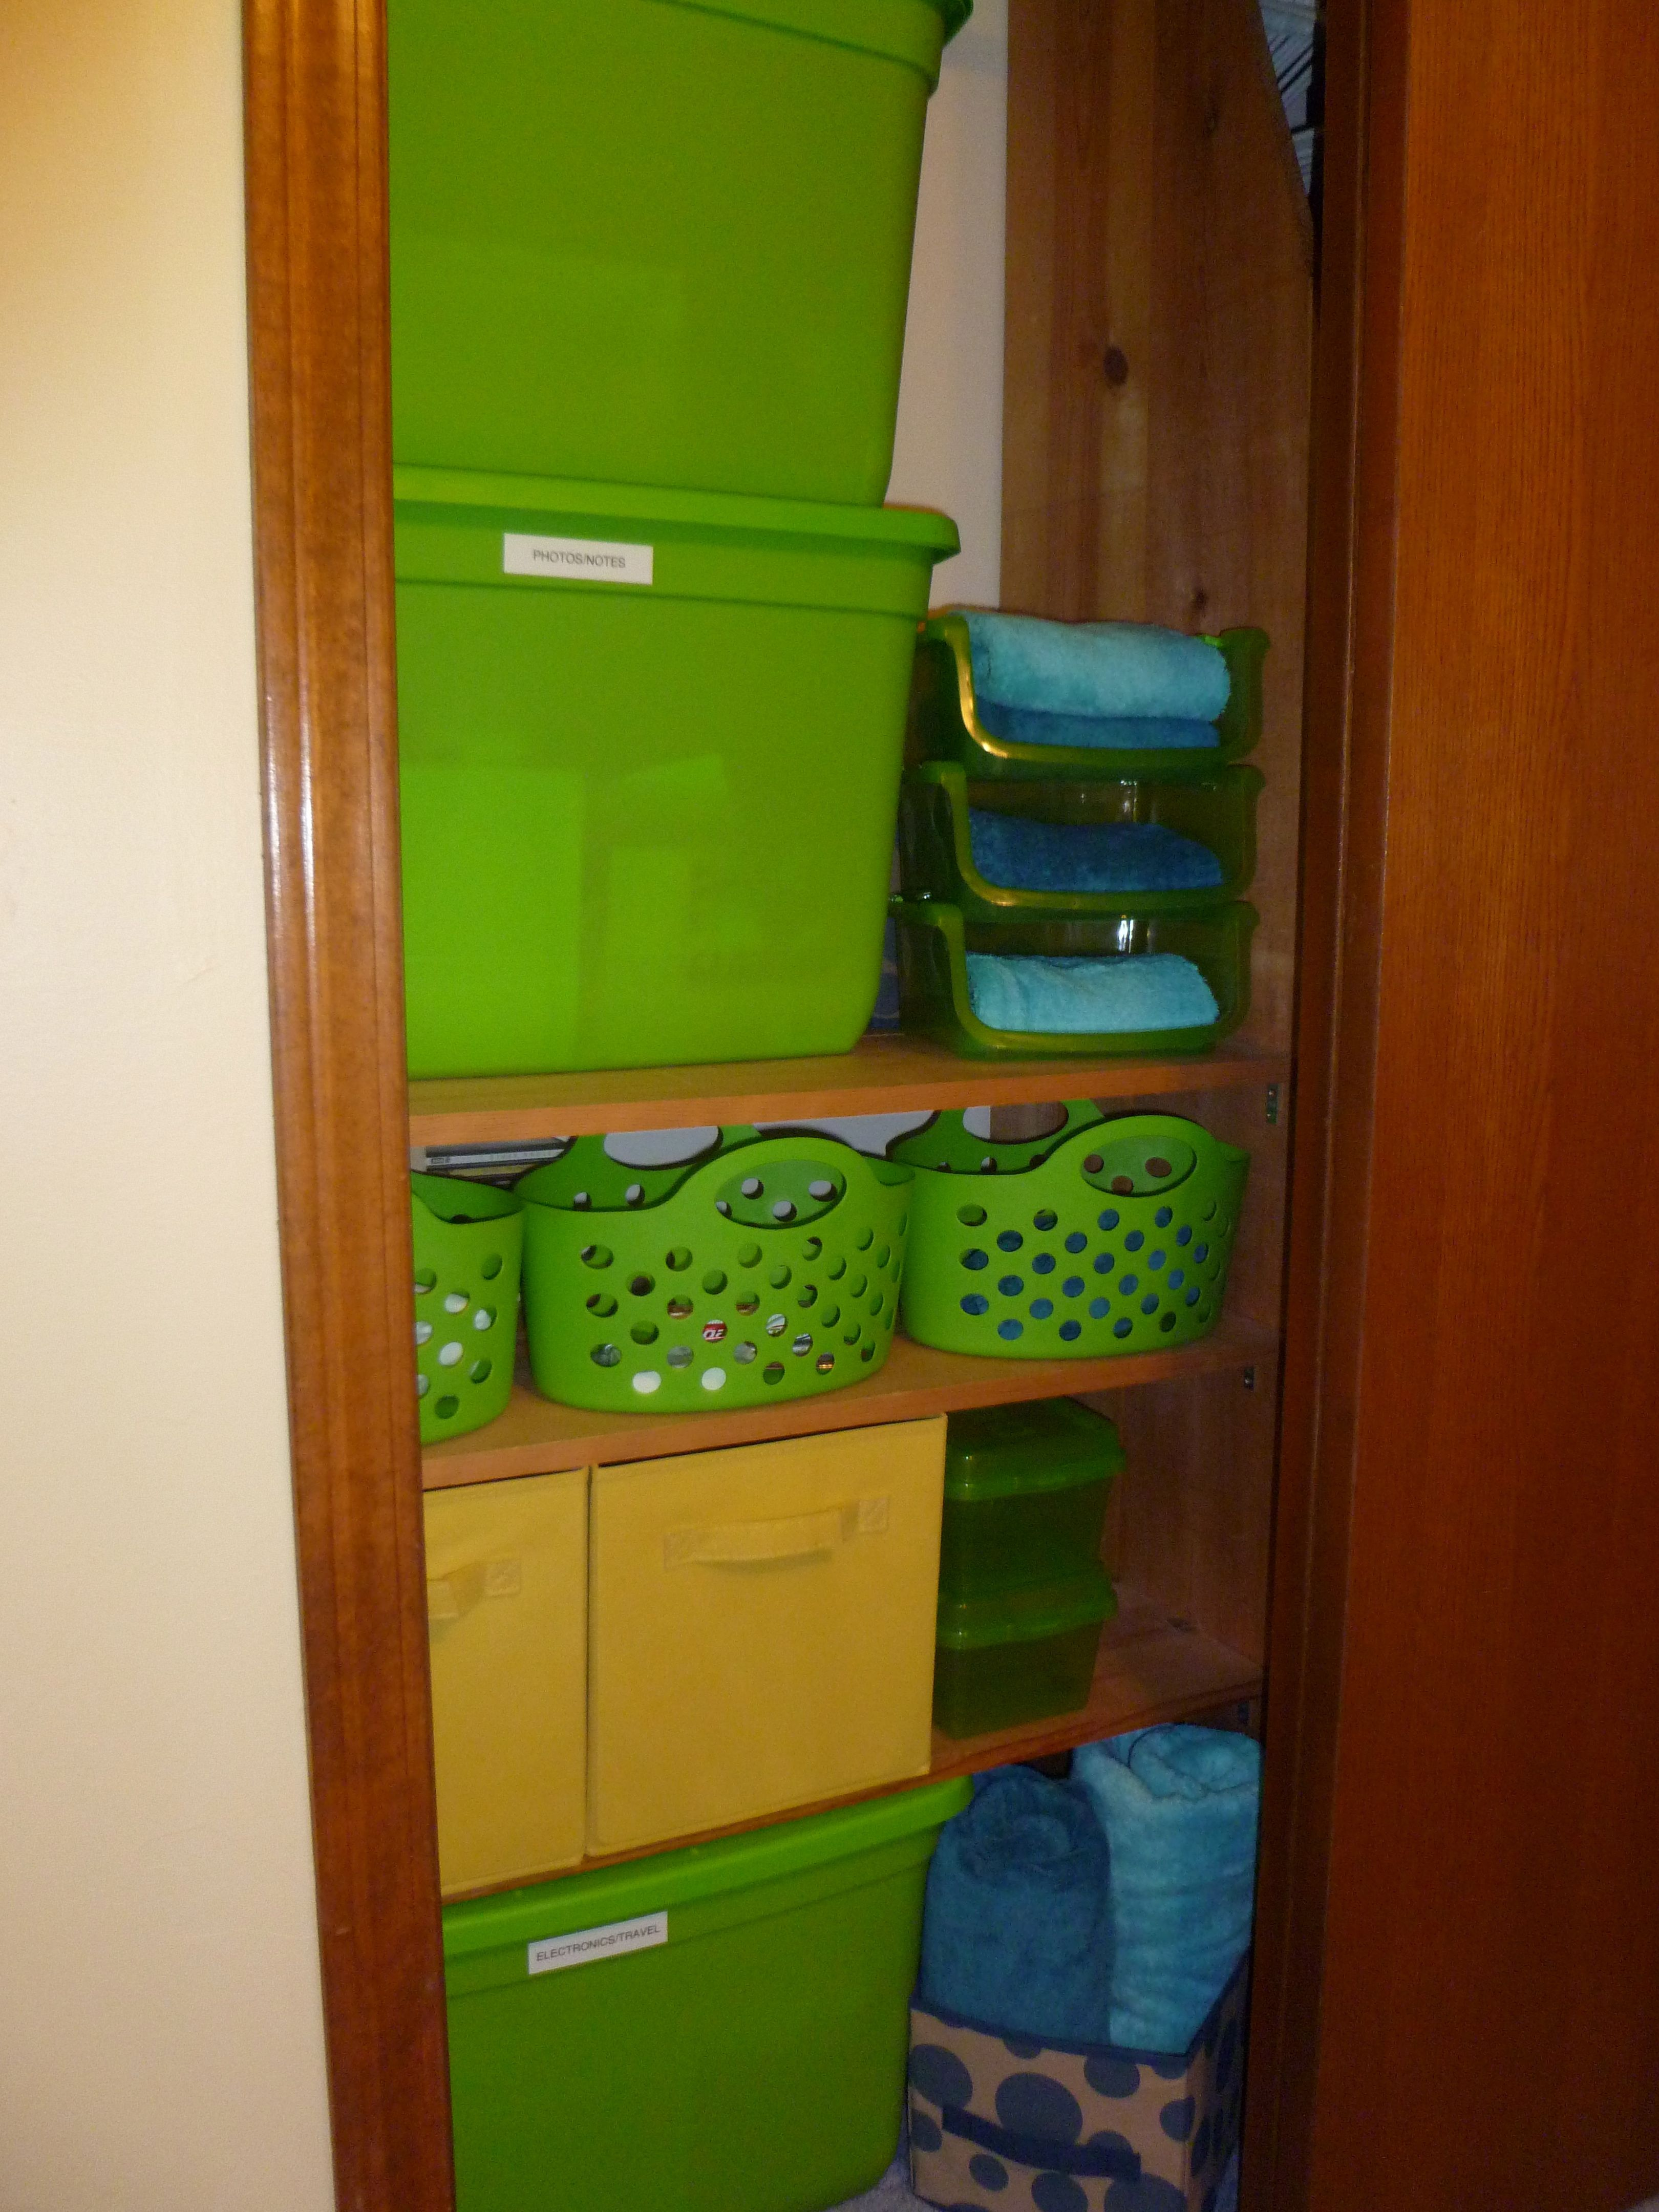 Large Totes From Lowe S Smaller Bins From Dollar Tree Dorm Room